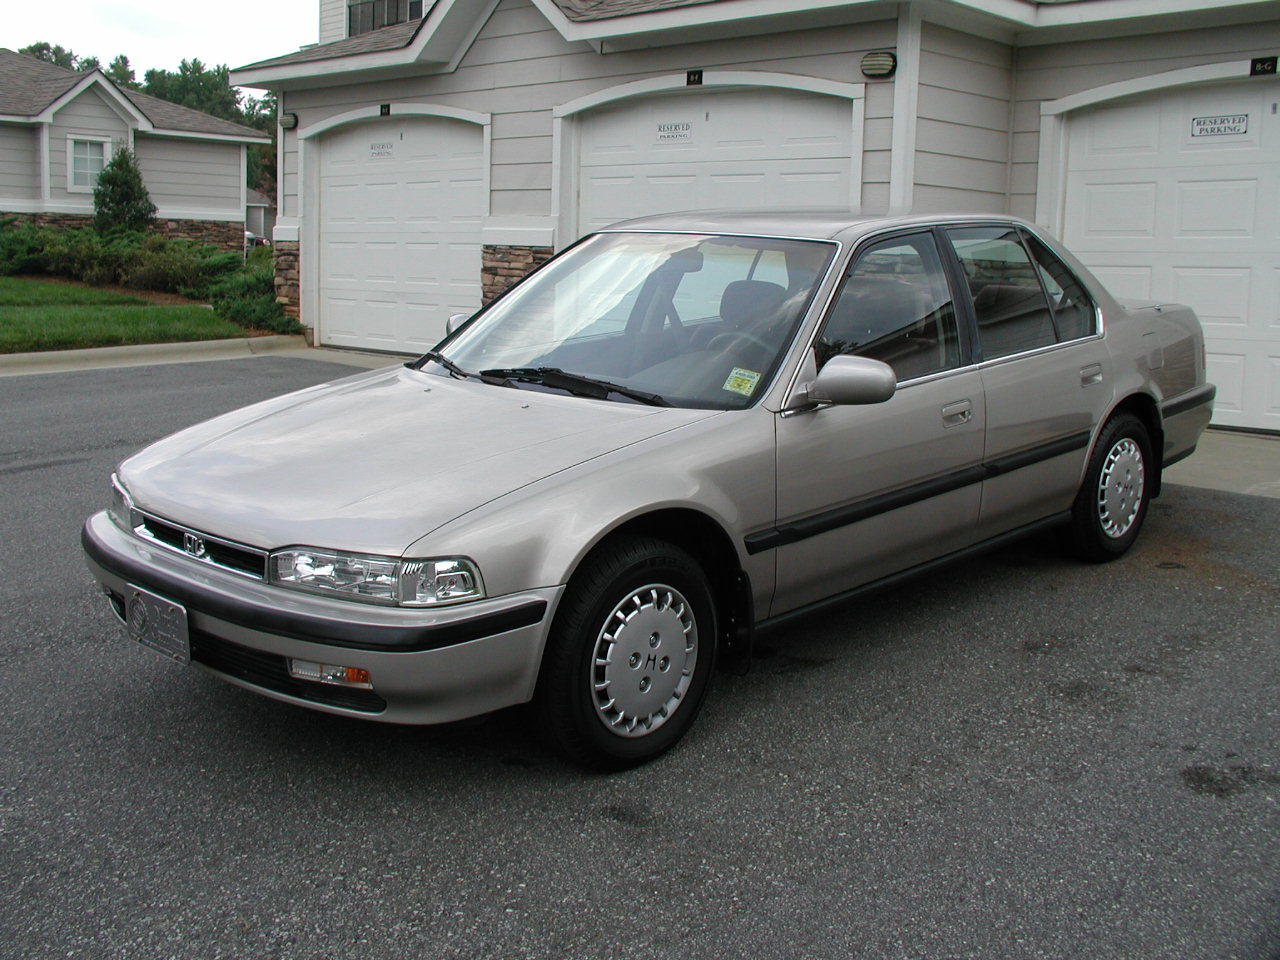 1991 honda accord partsopen for 200 honda accord